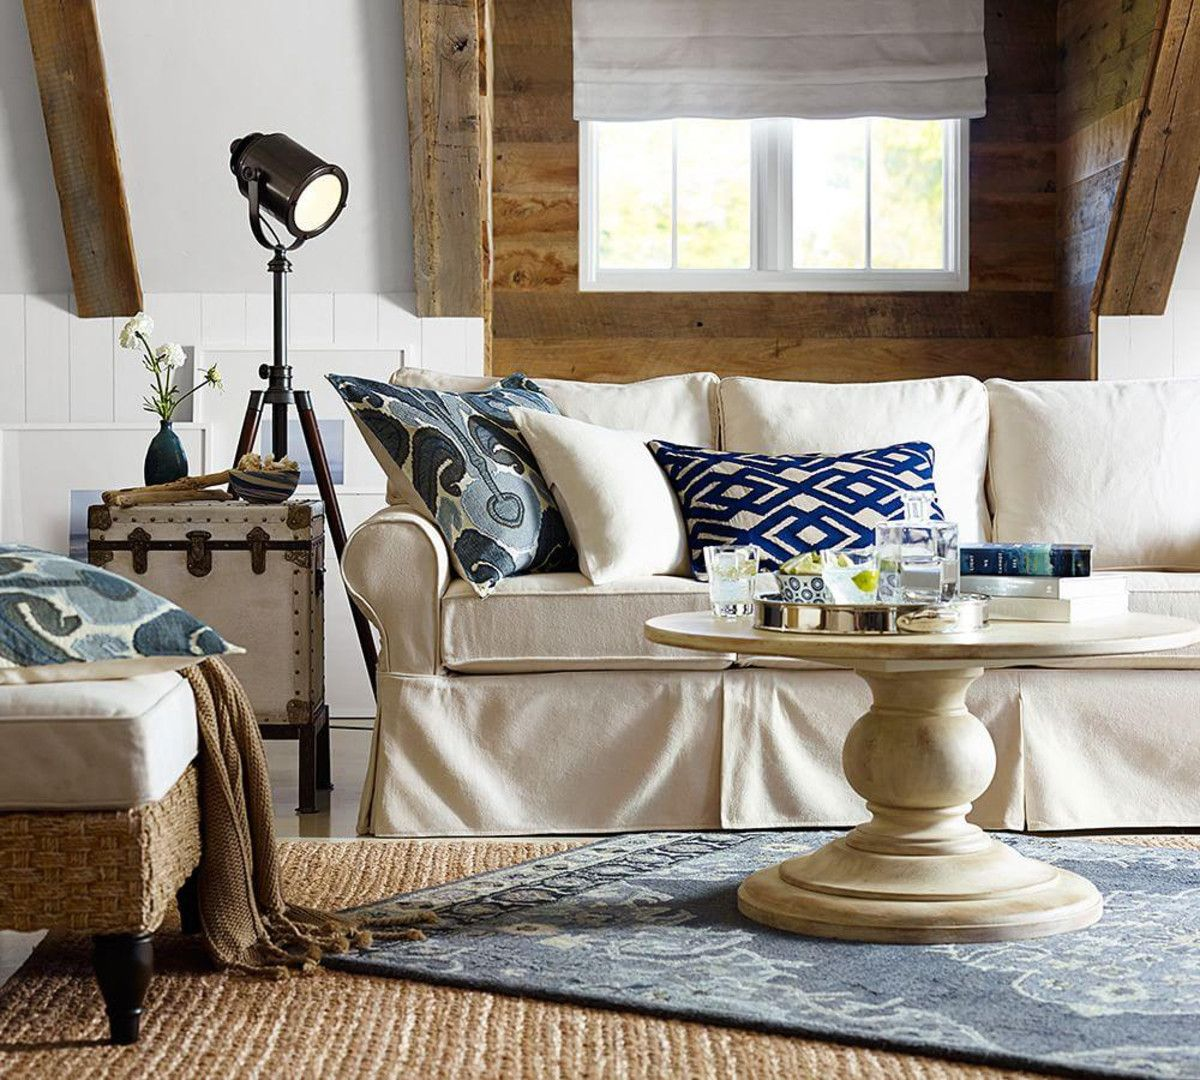 Pottery Barn Living Room With Carpet And Decorative Plant: Photographer's Tripod Floor Lamp